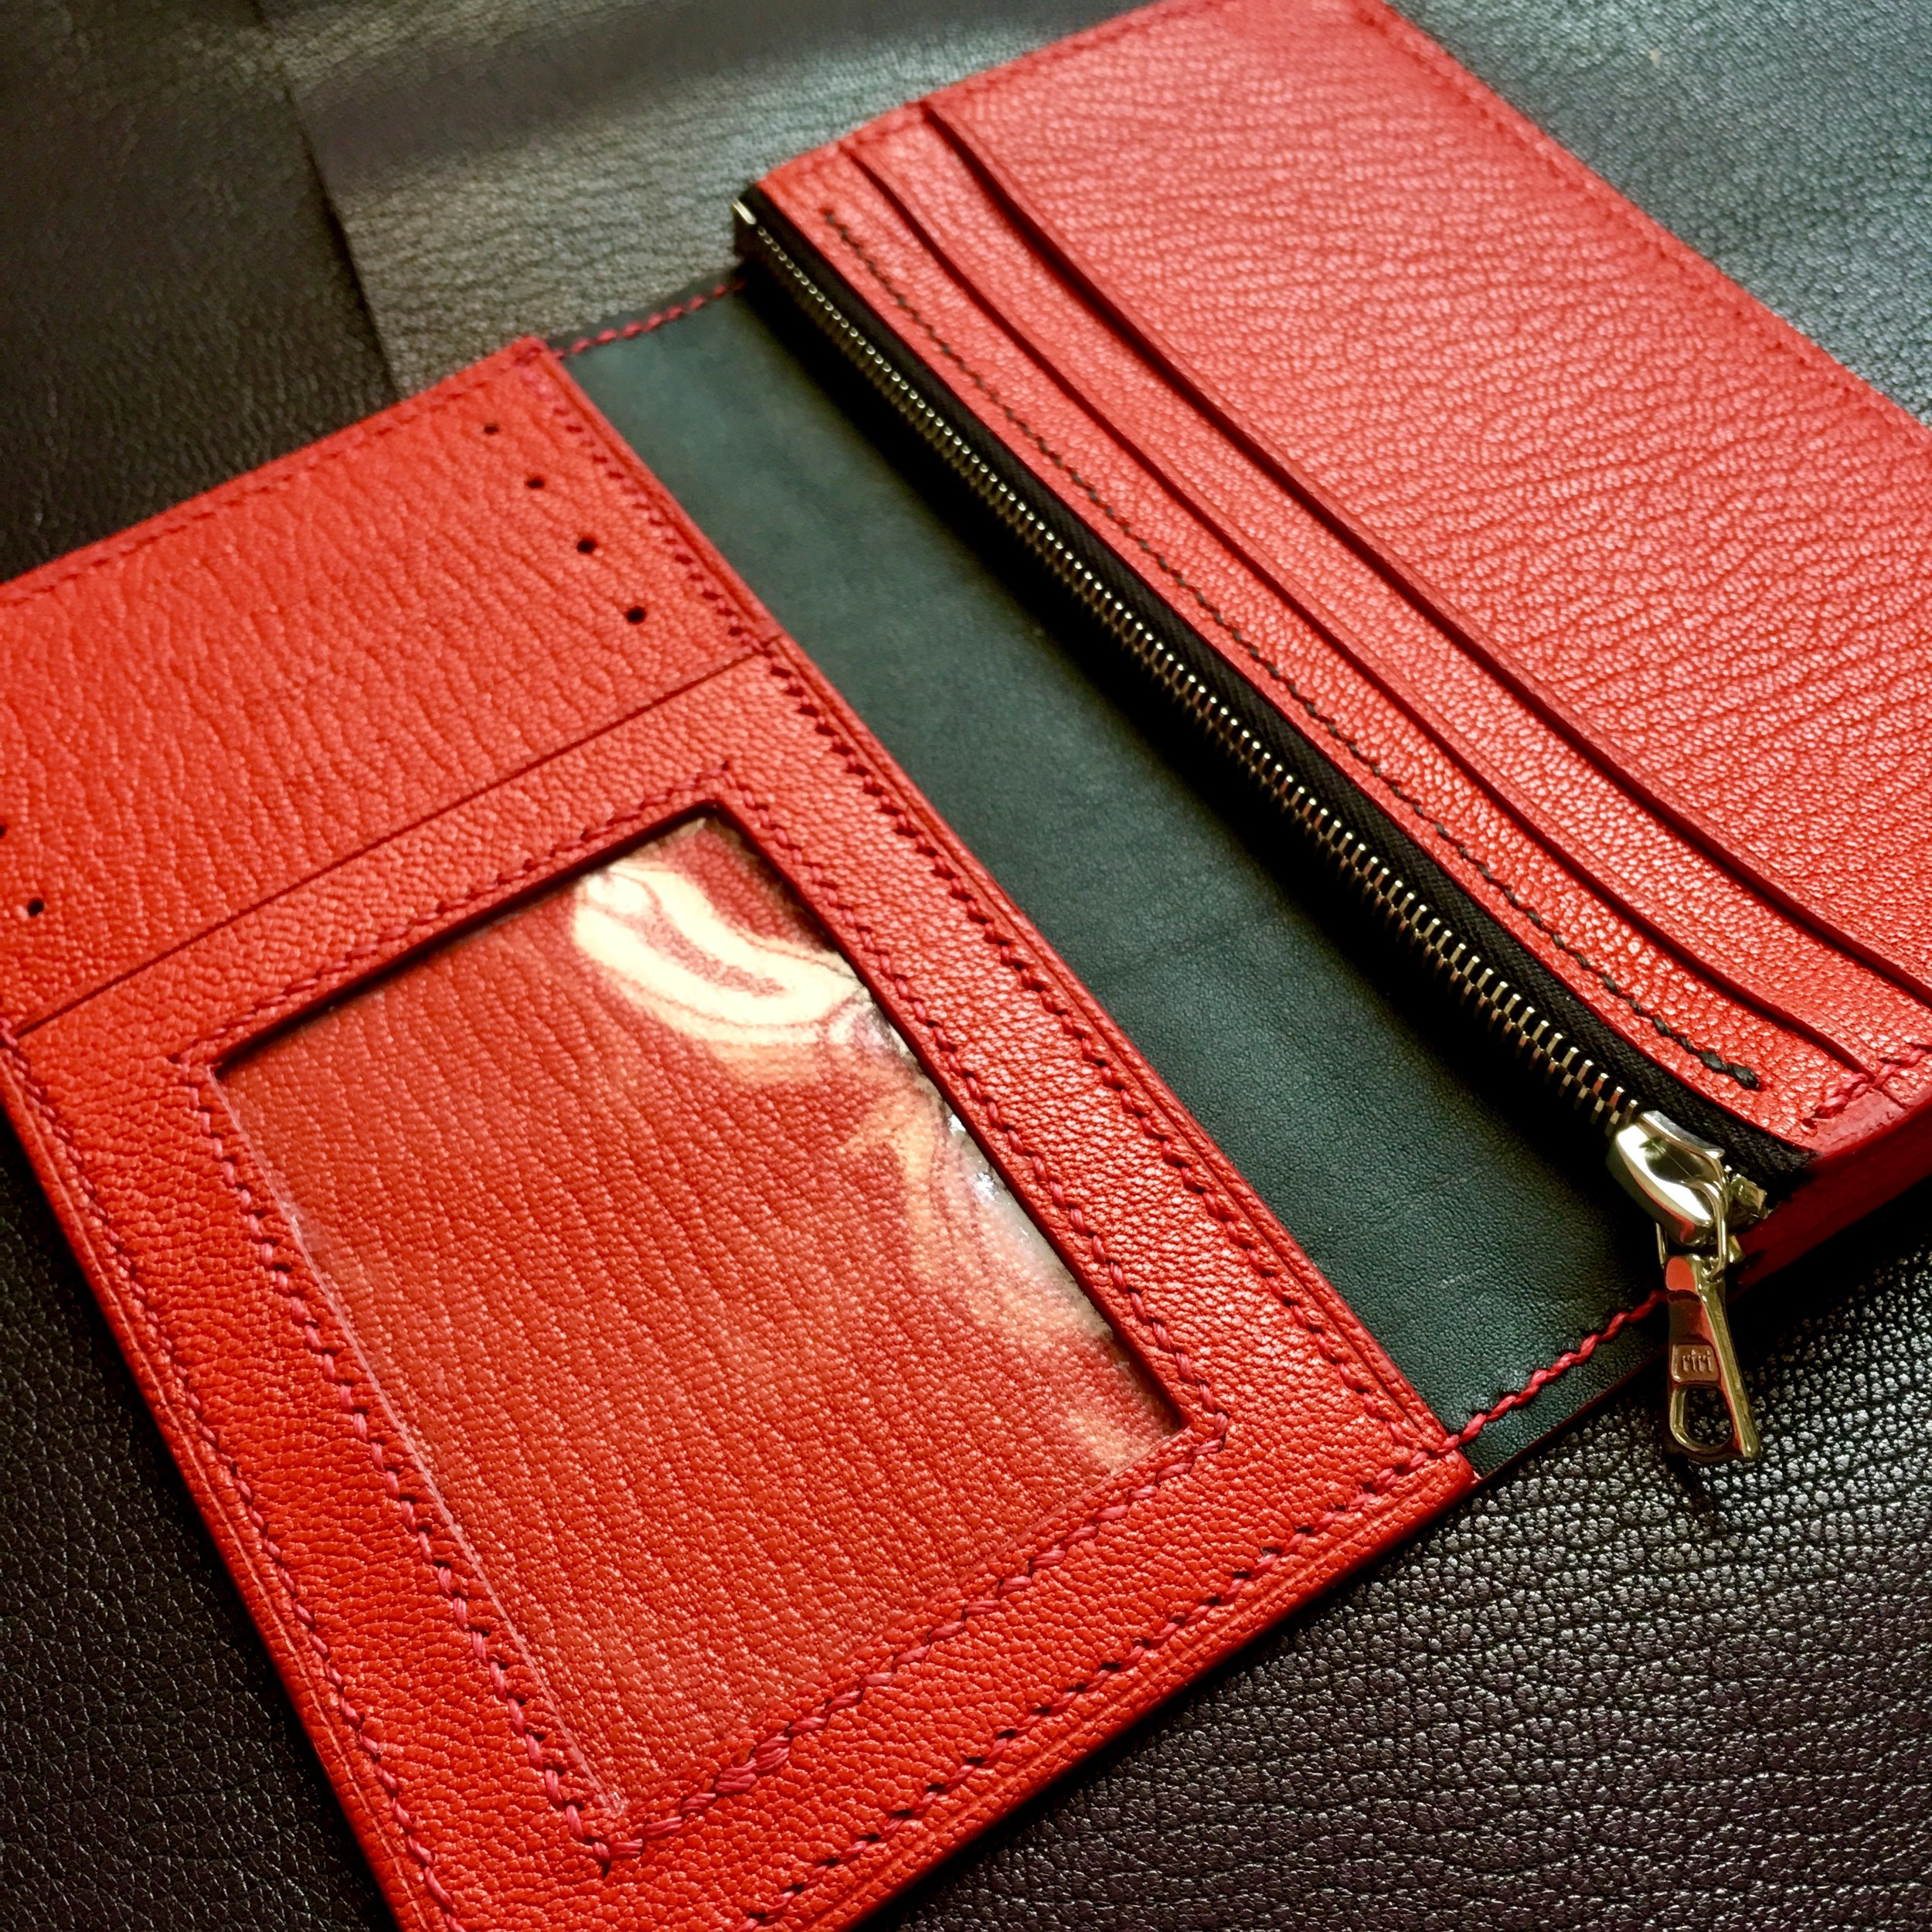 Bespoke ladies wallet (Barenia & Chevre)